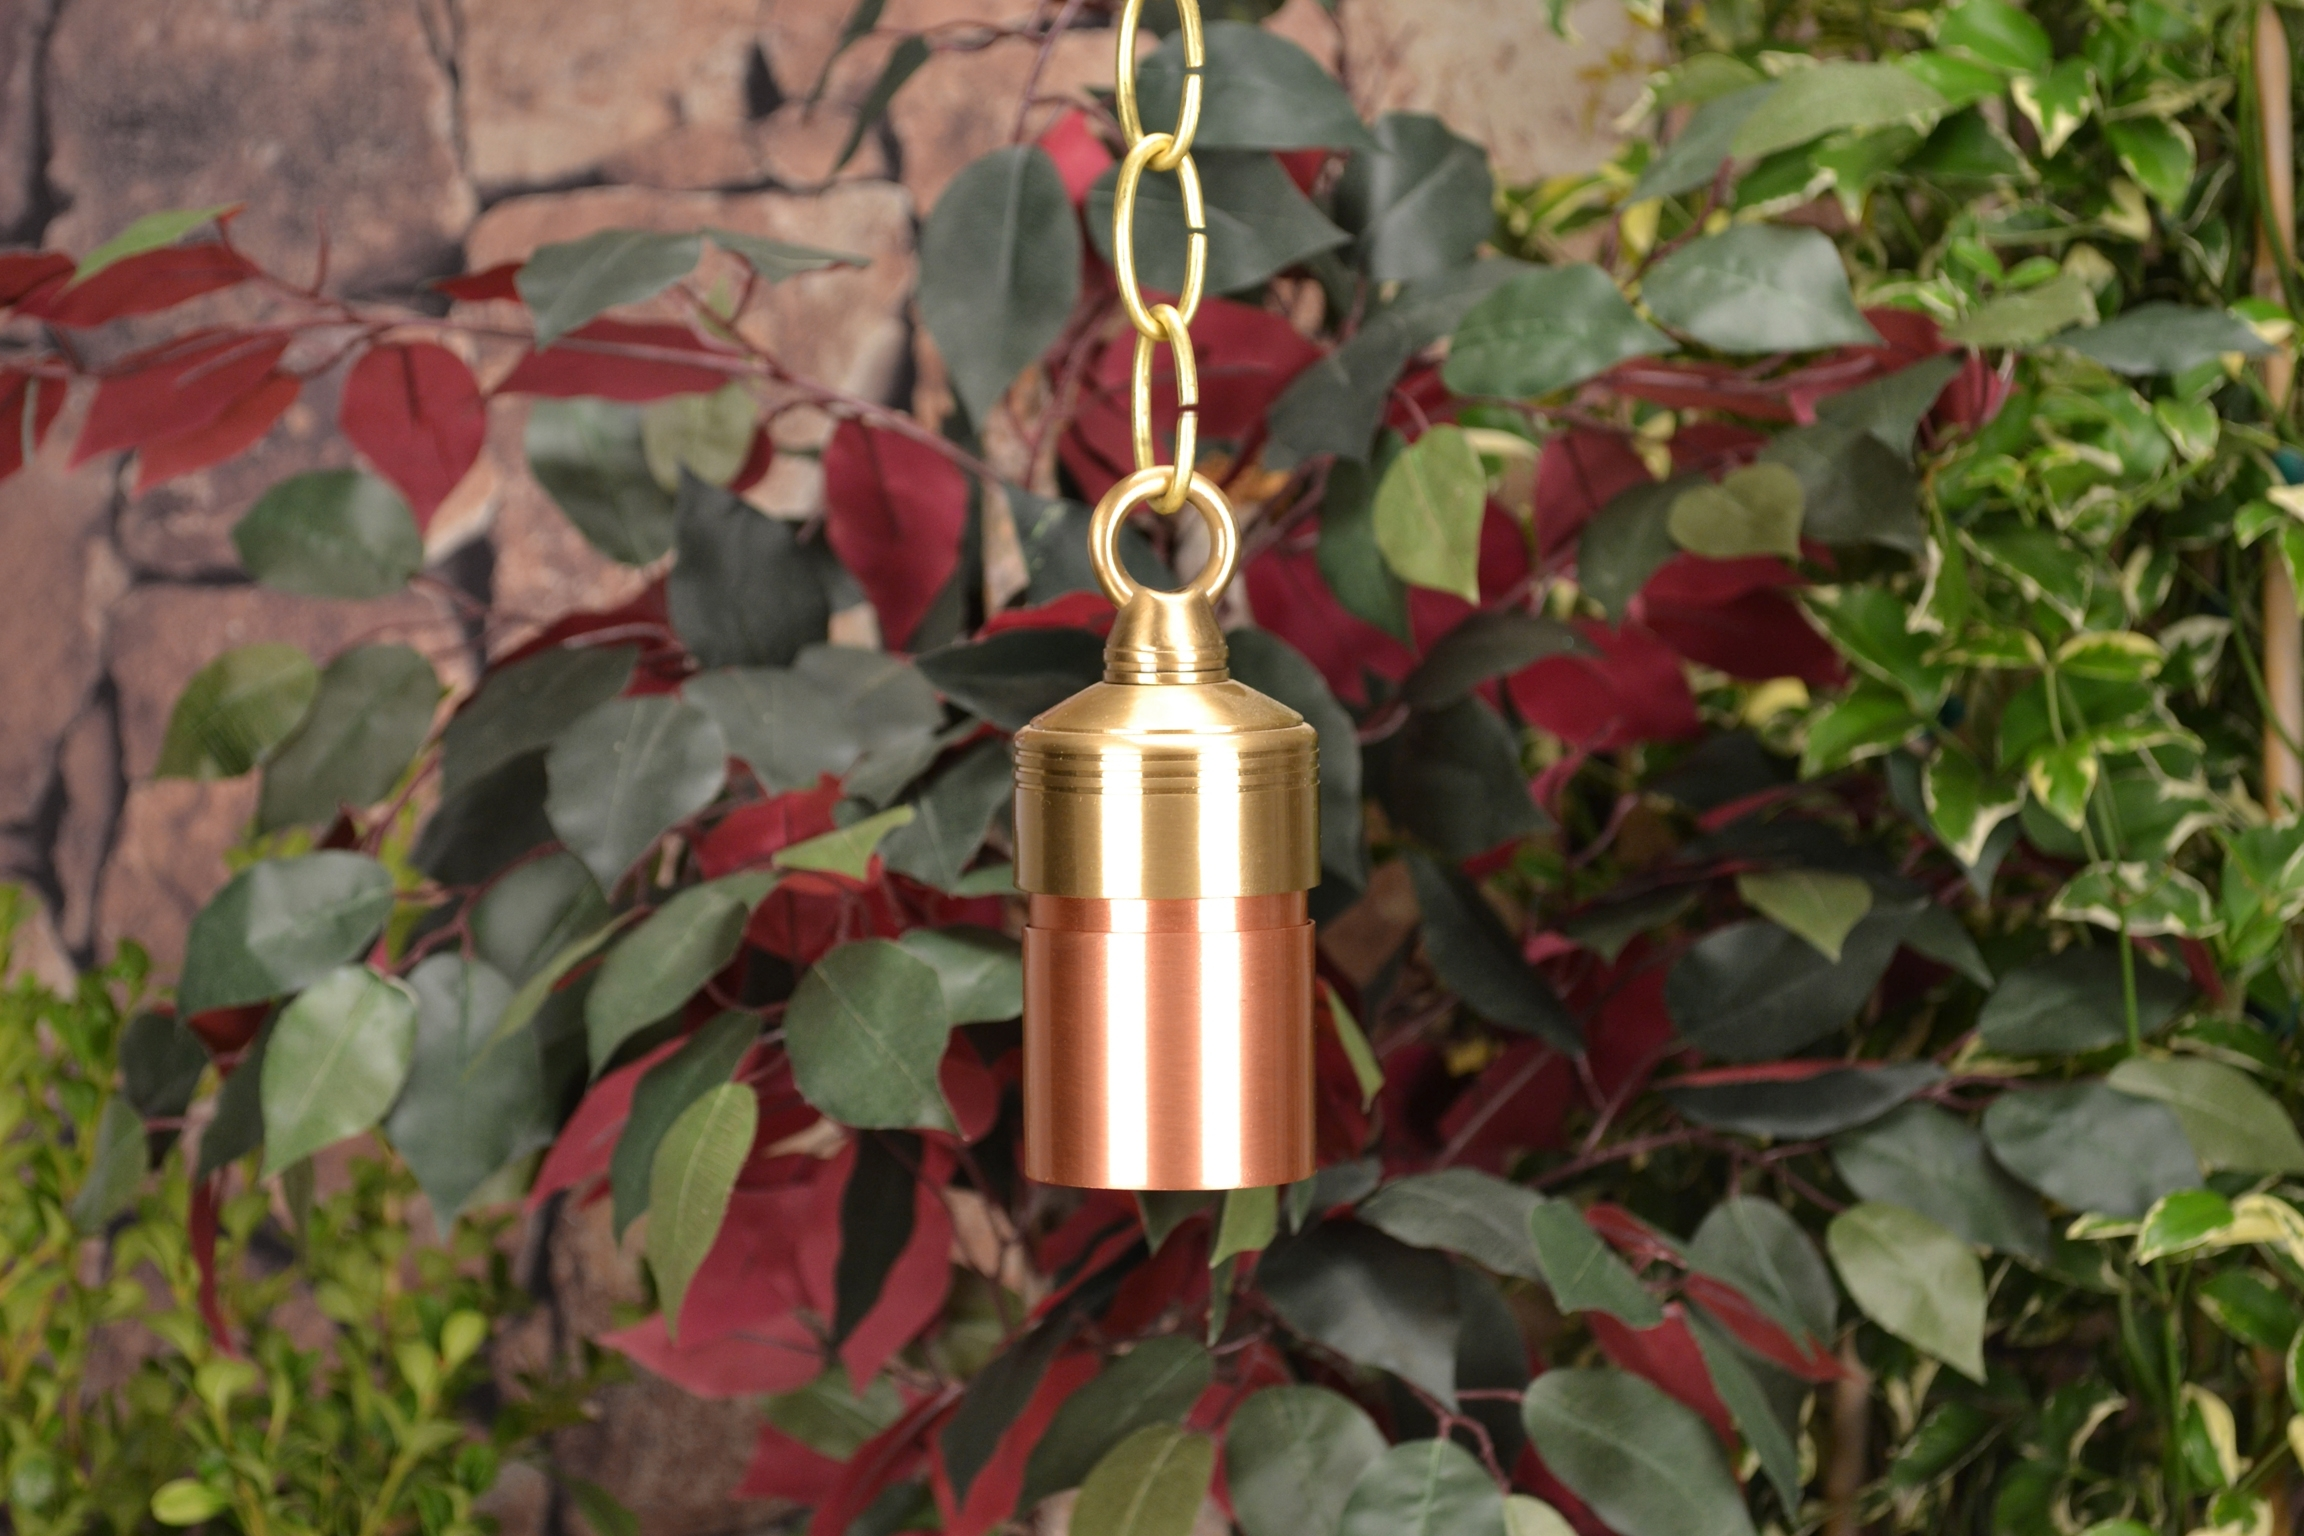 Lancasterunique Lighting Systems 12 Volt Copper Hanging Niche With Regard To Well Known 12 Volt Outdoor Hanging Lights (View 4 of 20)